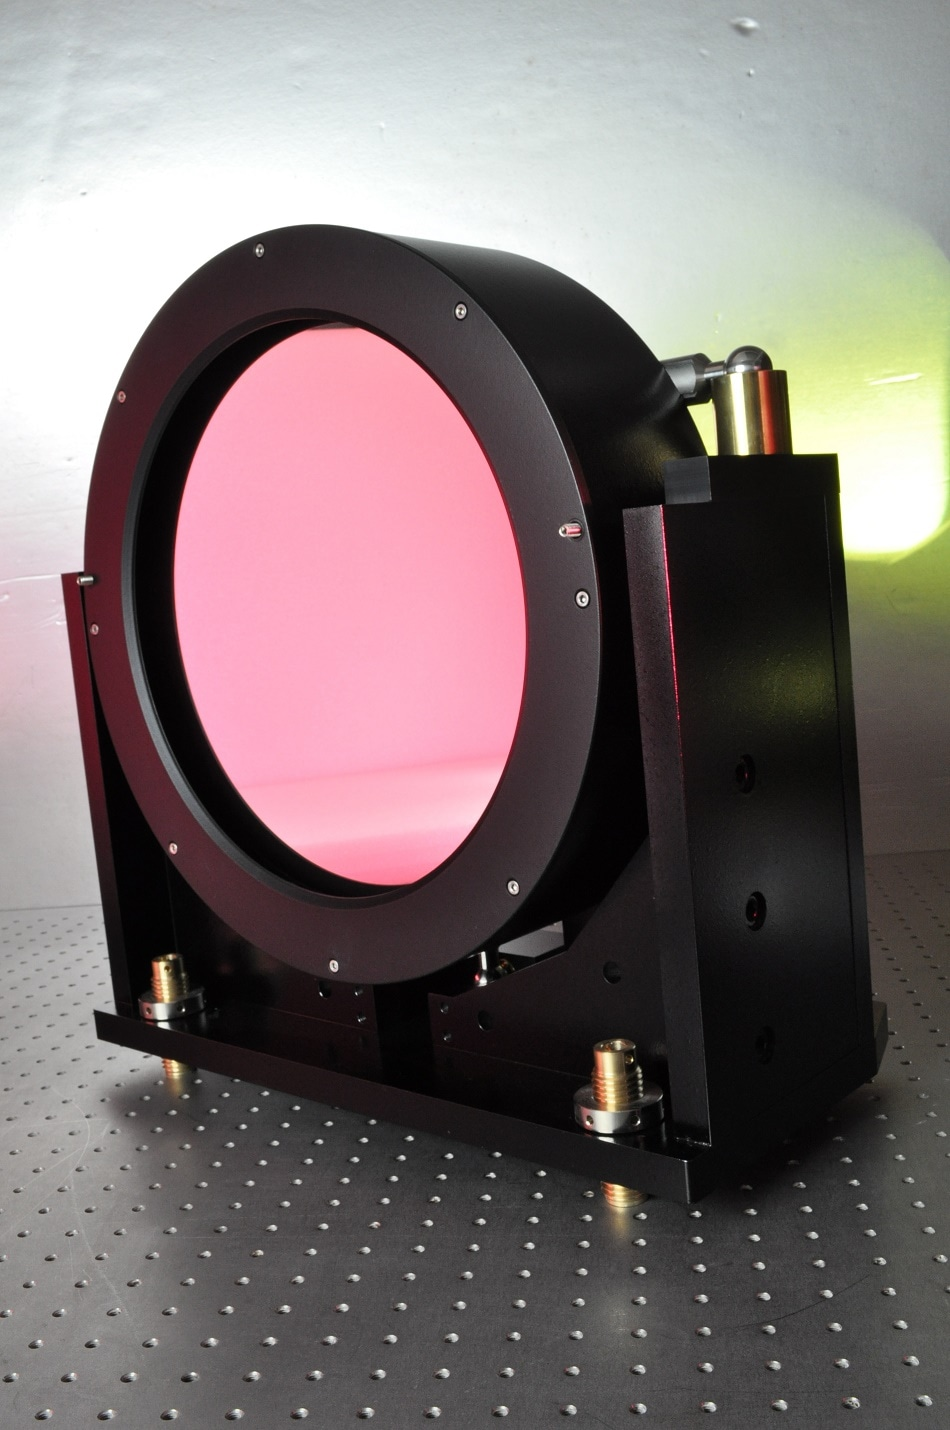 Optical Surfaces Delivers Key Components for Spaceborne Optical Systems